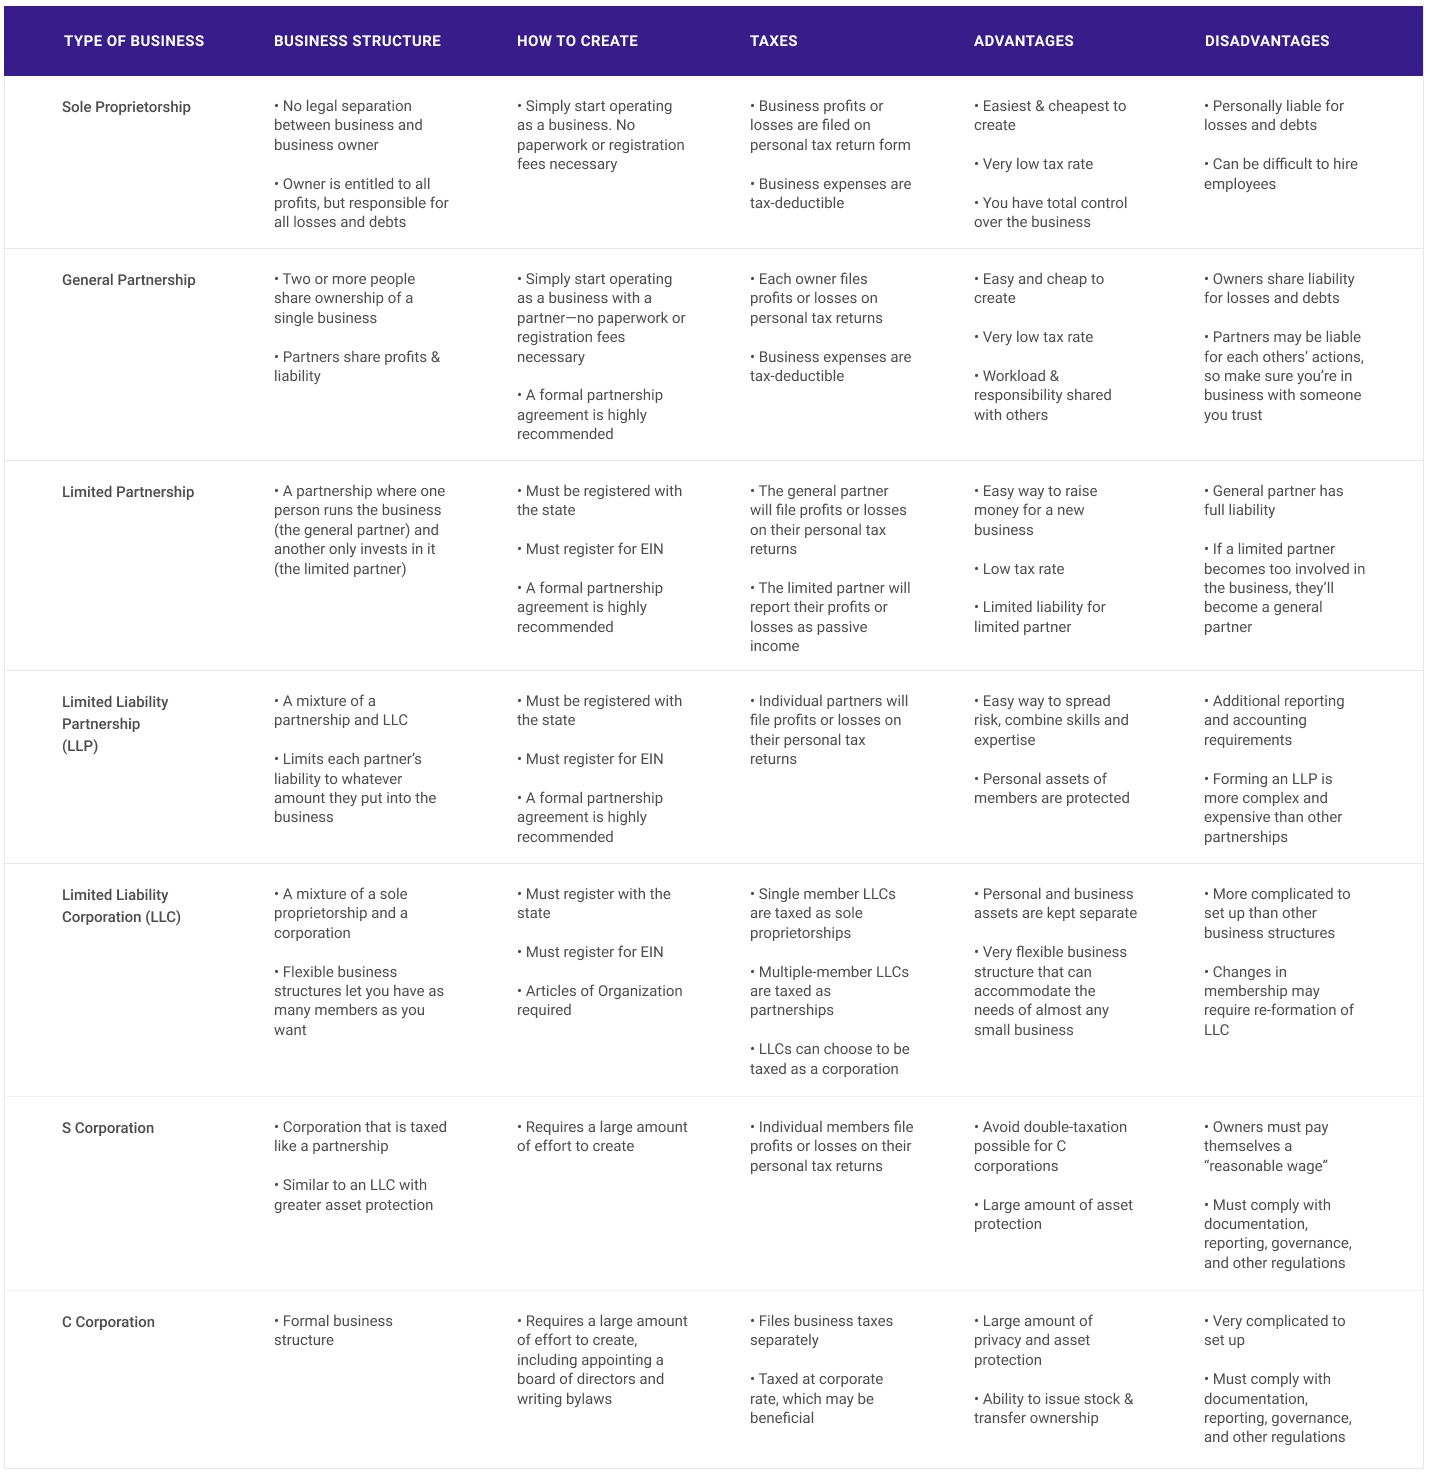 Table comparing different business organizational structures.